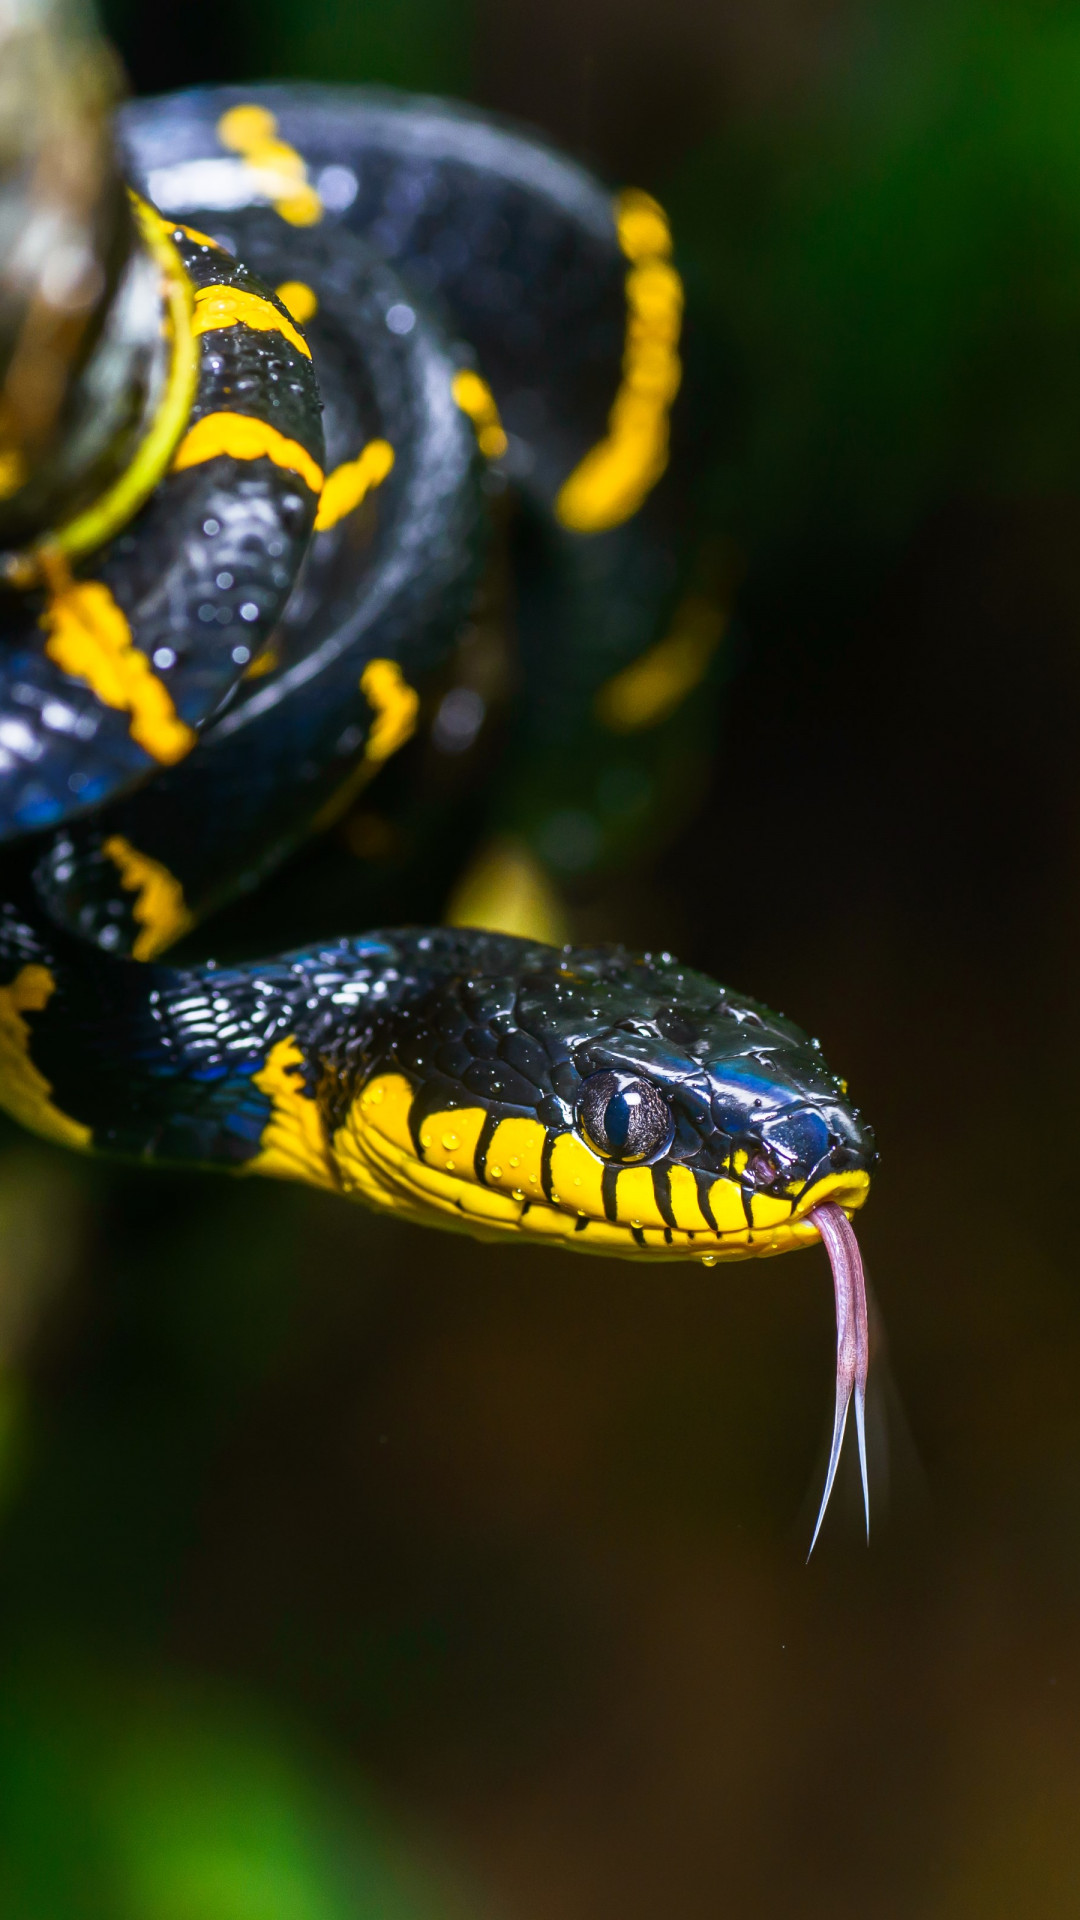 Mangrove snake wallpaper 1080x1920